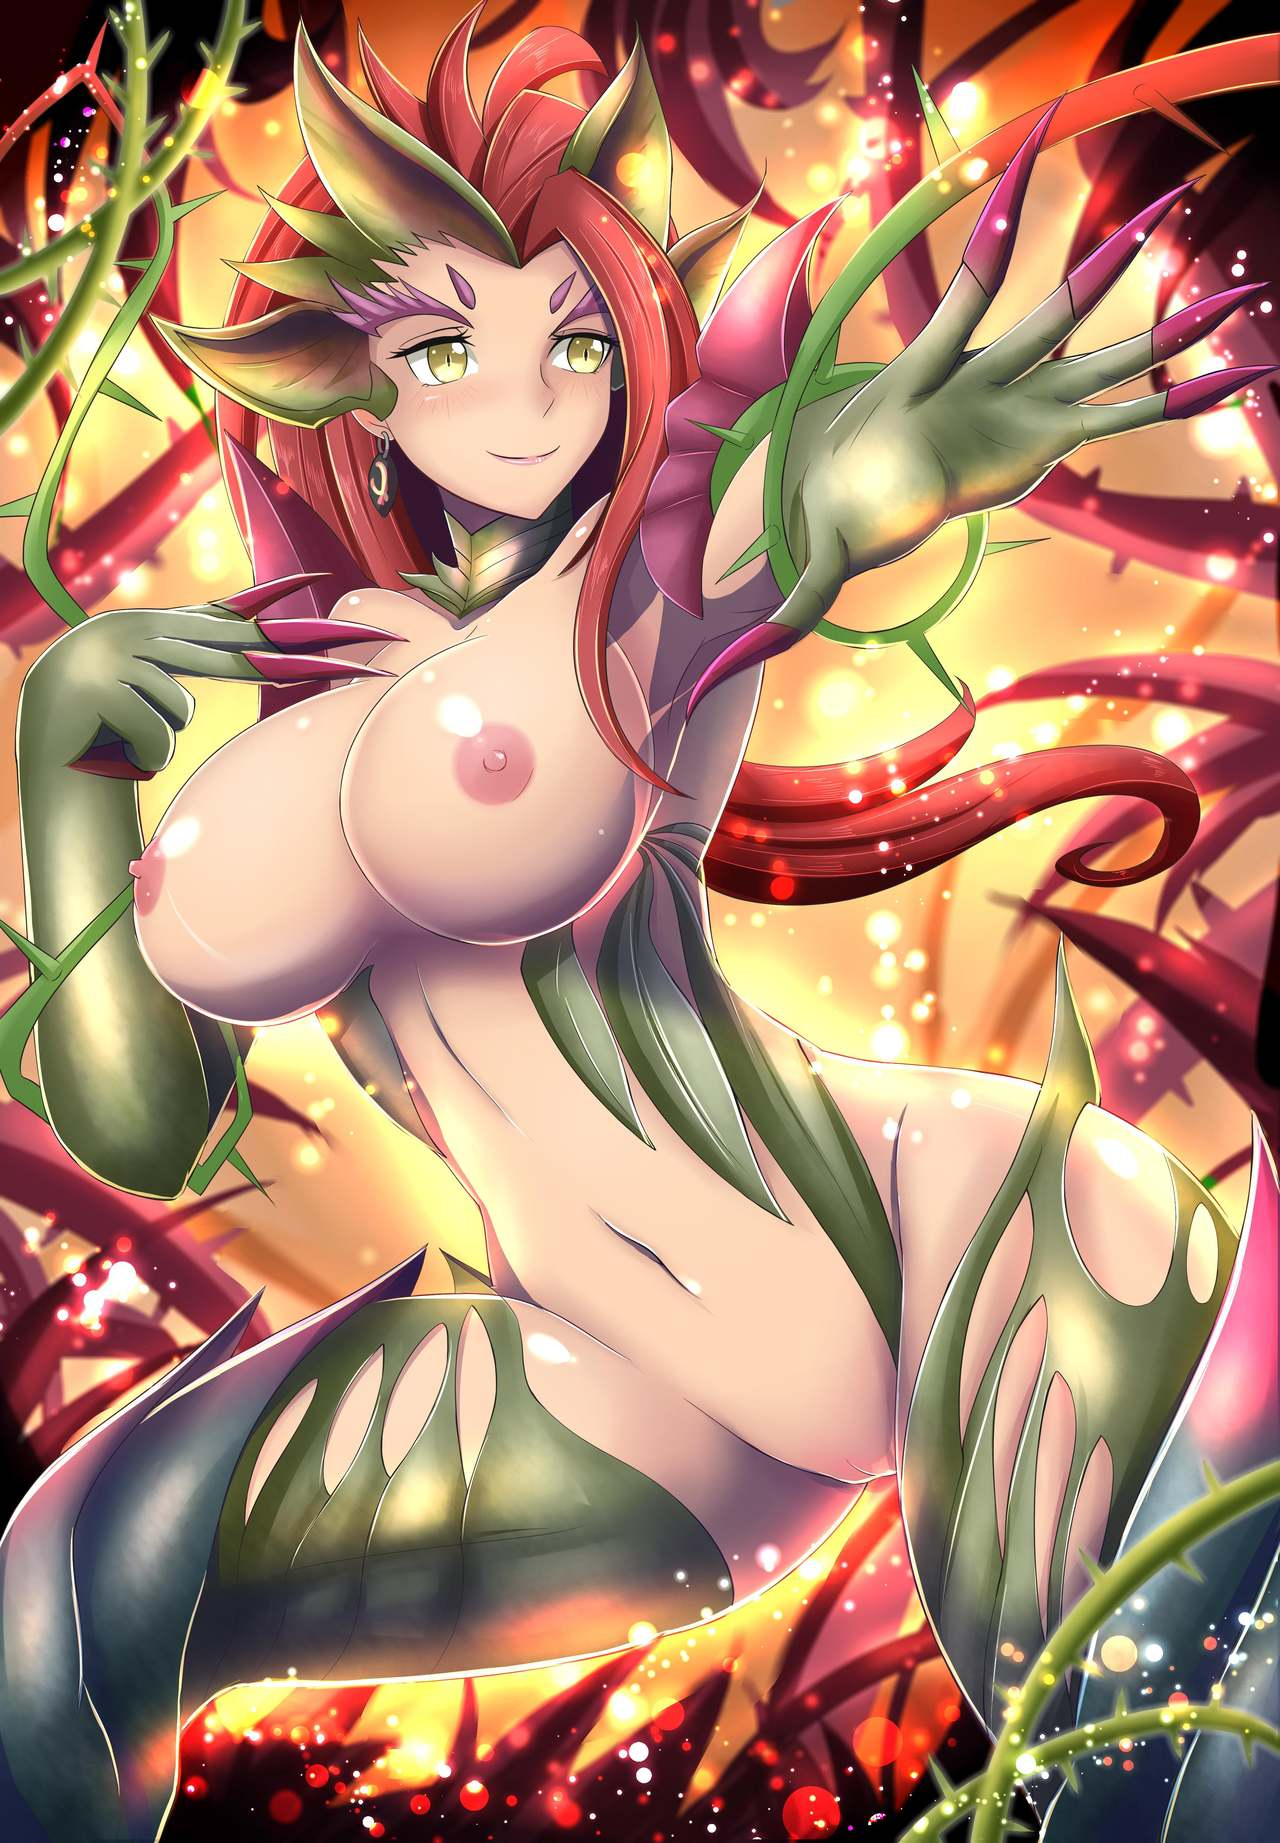 3546194 - League_of_Legends Zyra